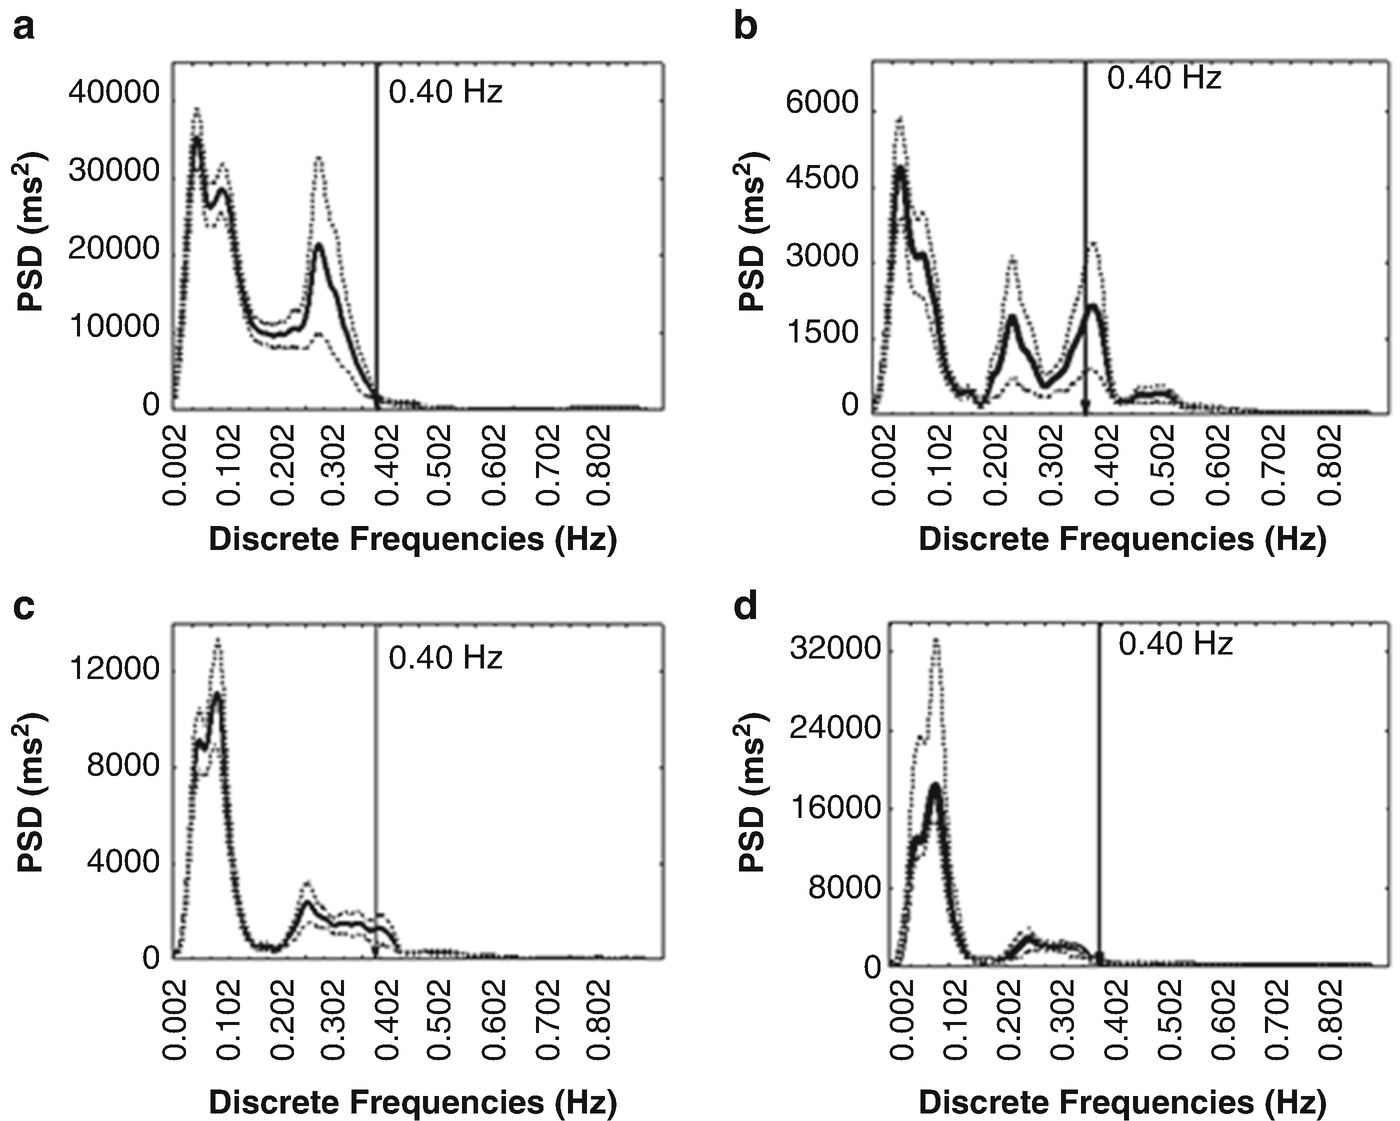 Very High Frequency Oscillations of Heart Rate Variability